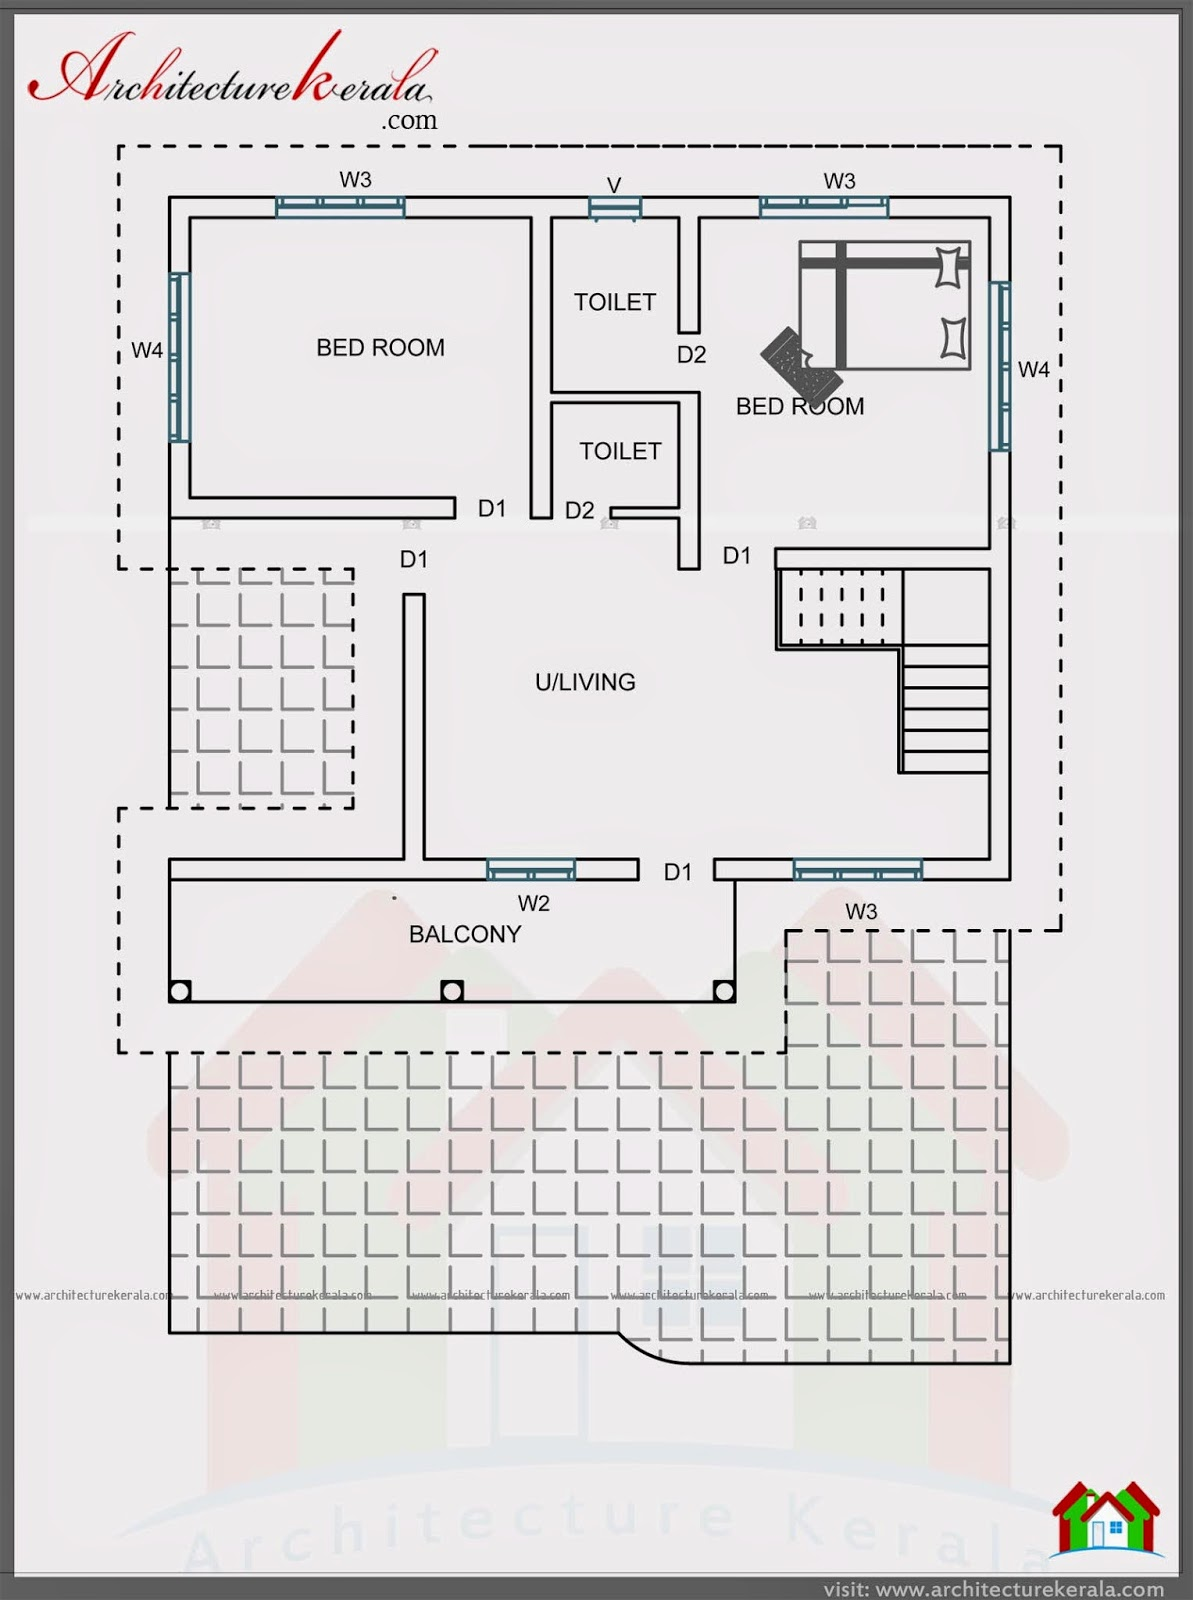 4 bedroom house in 2000 square feet architecture kerala for 4 bedroom house designs in kerala